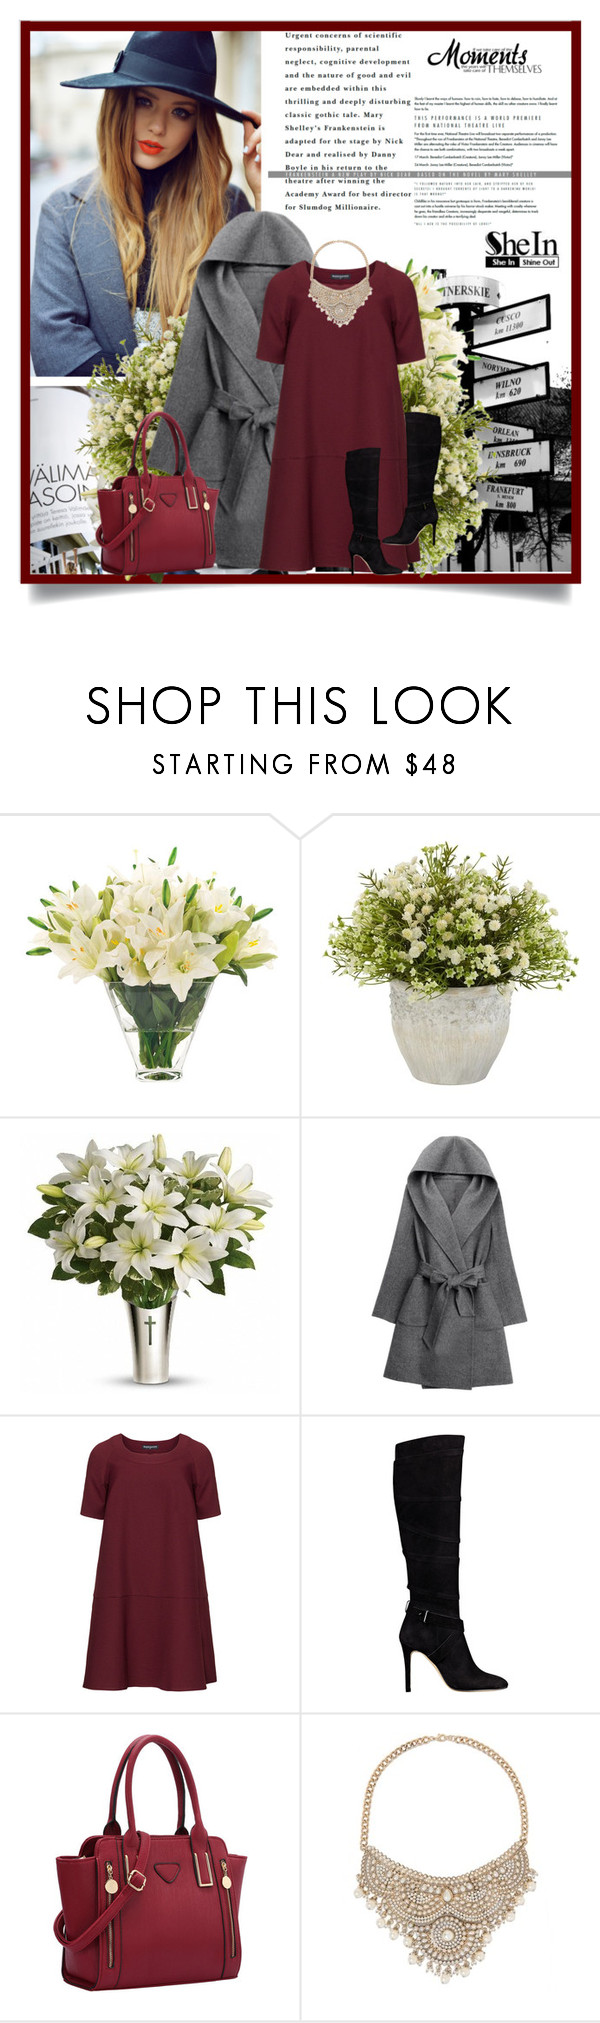 """Shein"" by neyra11 ❤ liked on Polyvore featuring NDI, Nearly Natural, WithChic, Manon Baptiste, GUESS, Bebe and plus size dresses"